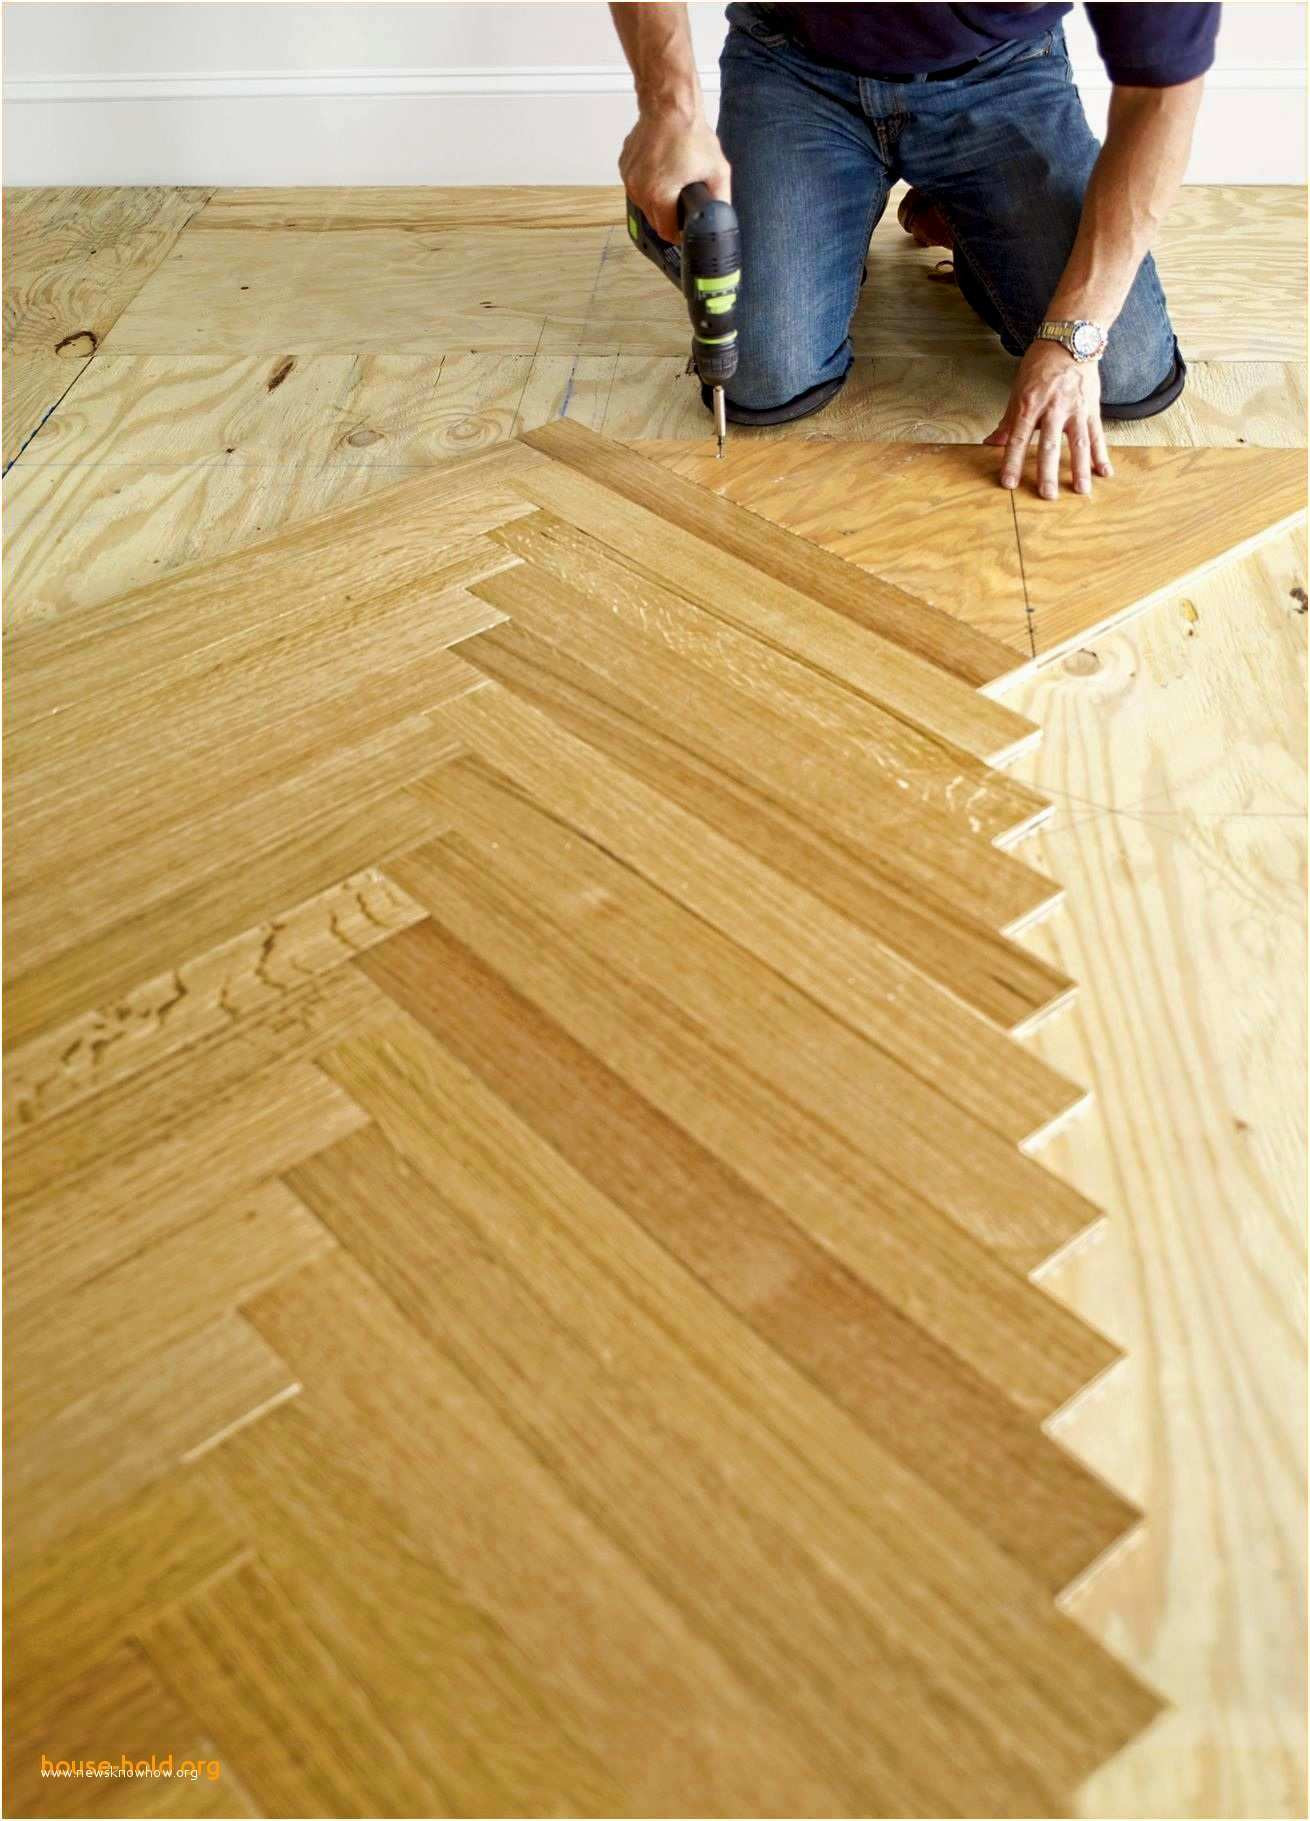 home depot hardwood flooring reviews of 21 gallery of hardwood floor furniture protectors home depot www in hardwood floor furniture protectors home depot superb floor gap fixer tool home depot admirably how to